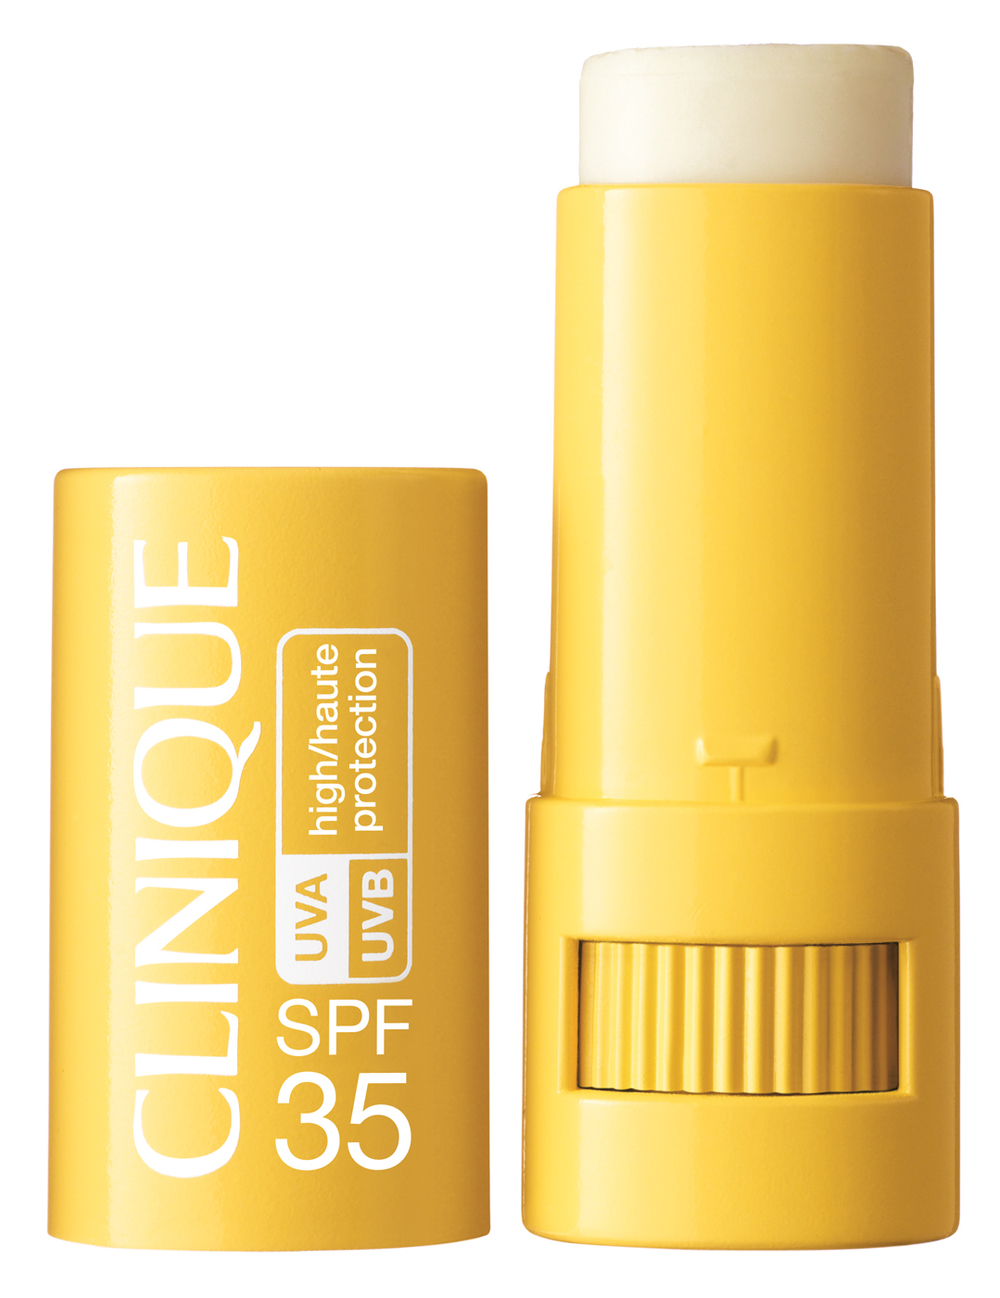 Targeted Protection Stick SPF 35 Icon - INTL.JPG